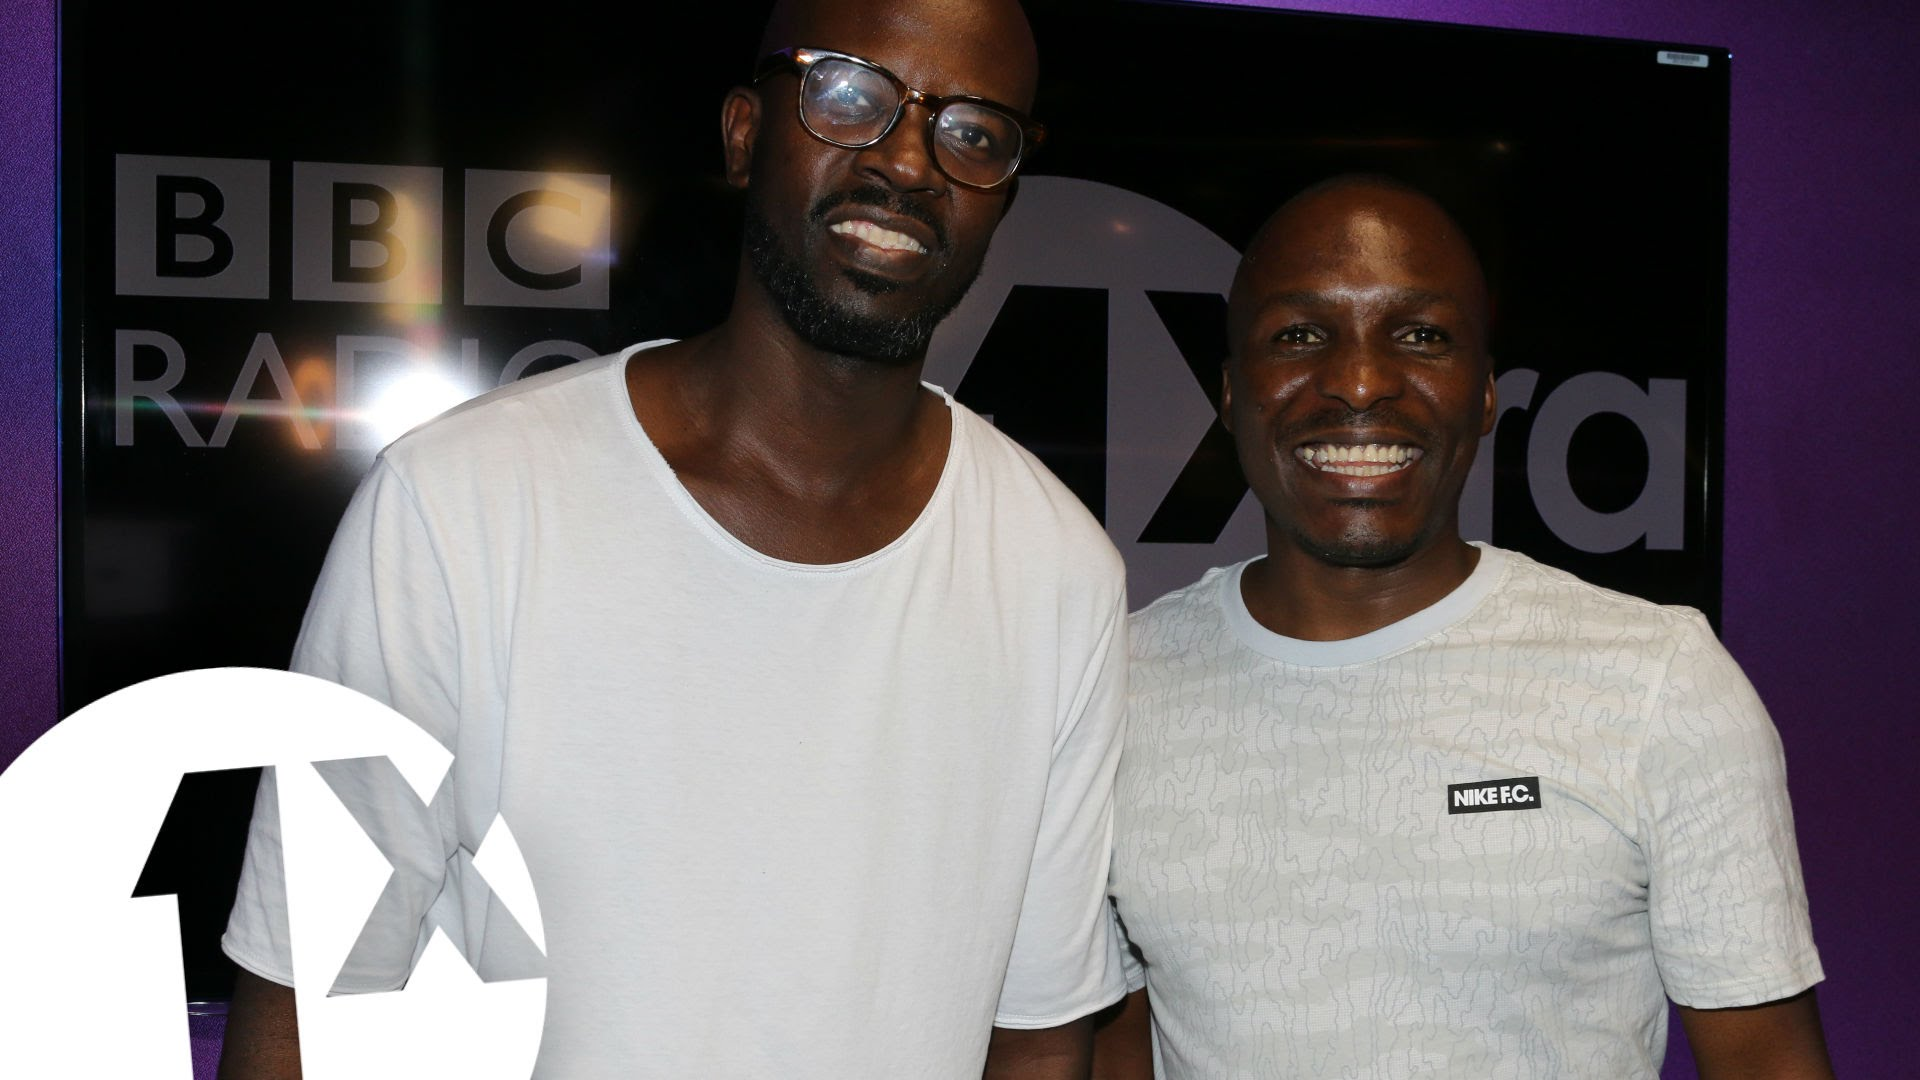 Black Coffee Chats About Turning Down Remixes For Justin Bieber, His Success Story & More In An Interview On BBC 1Xtra